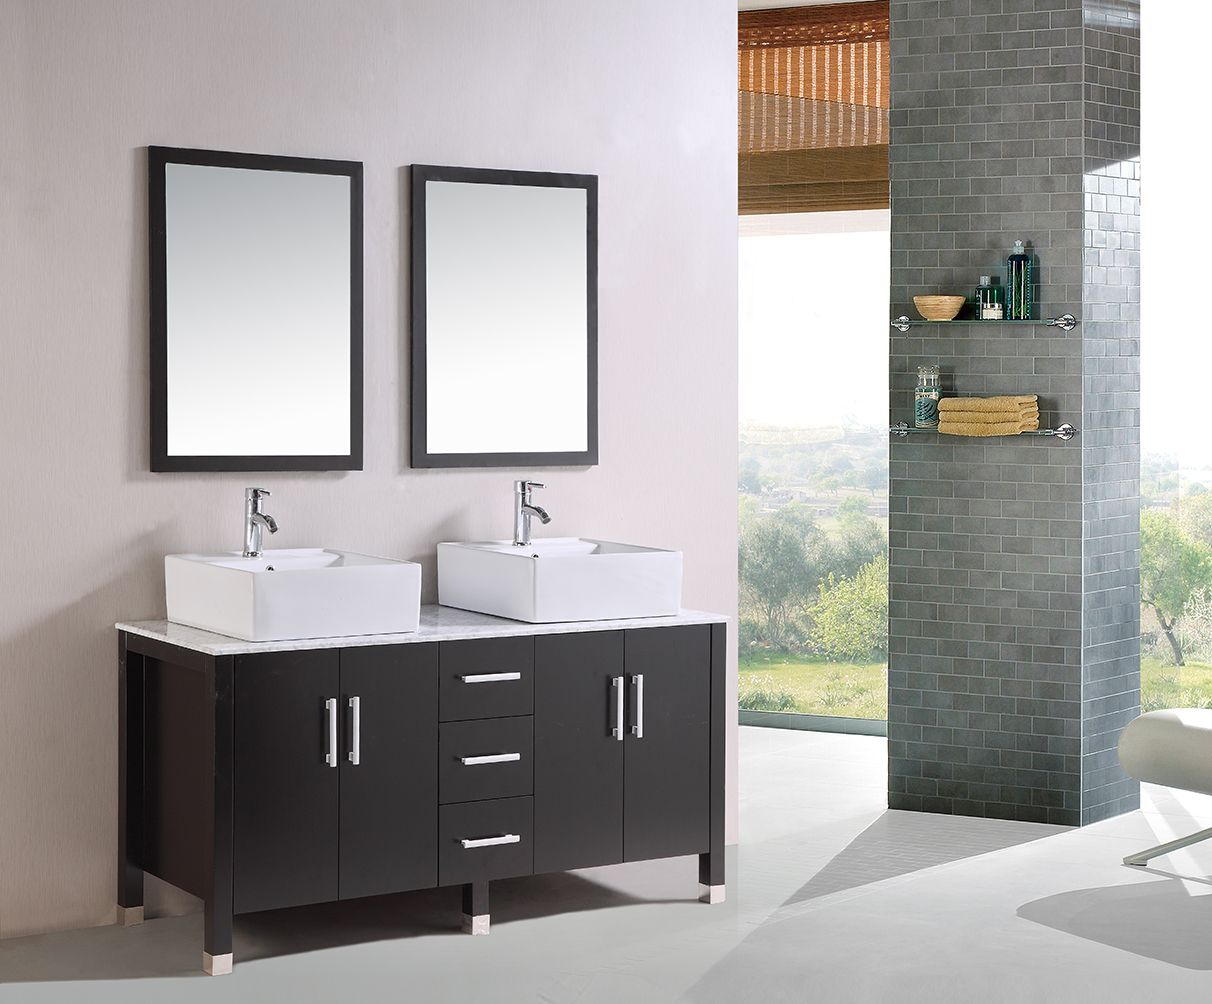 Bathroom Vanities Stores taps toronto bath store. halifax free standing bath tub home decor